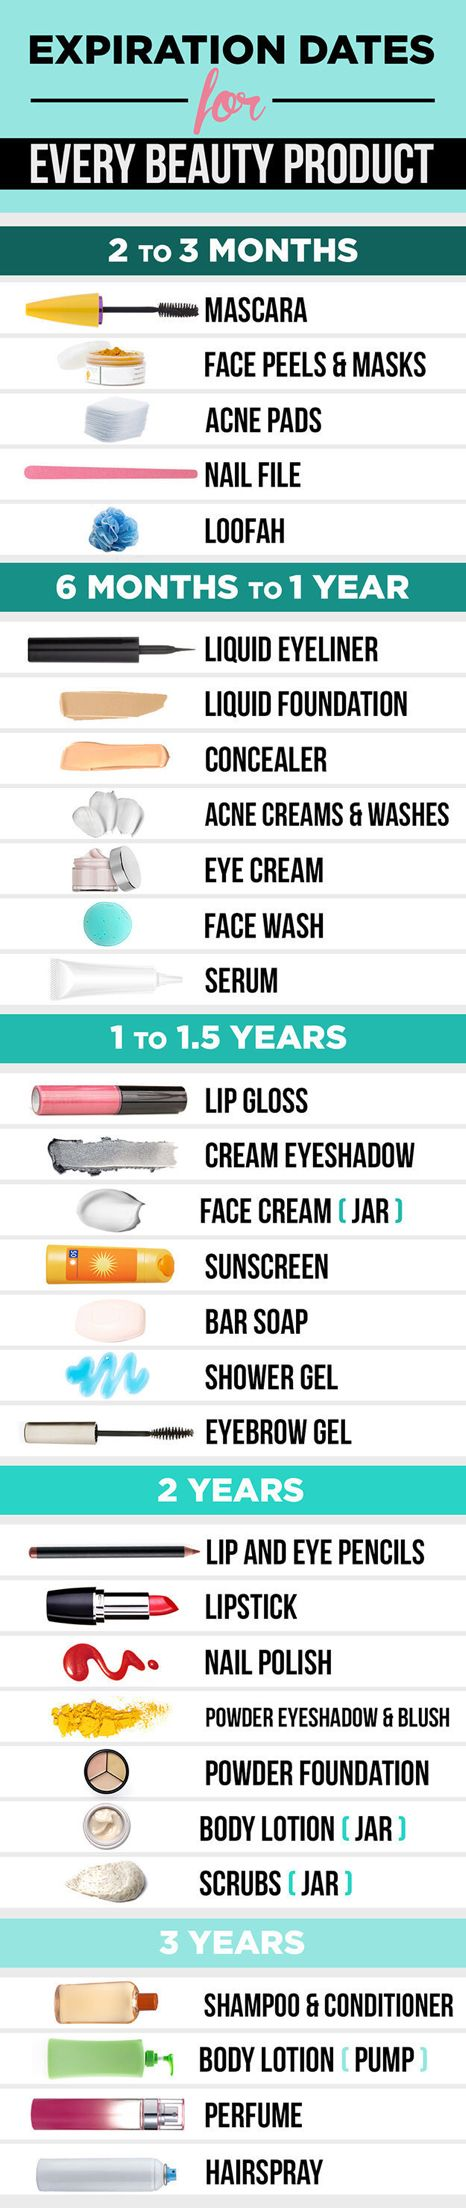 Nice information to consider when it comes to expiration dates. Makeup tips to take a look at because our health is first.